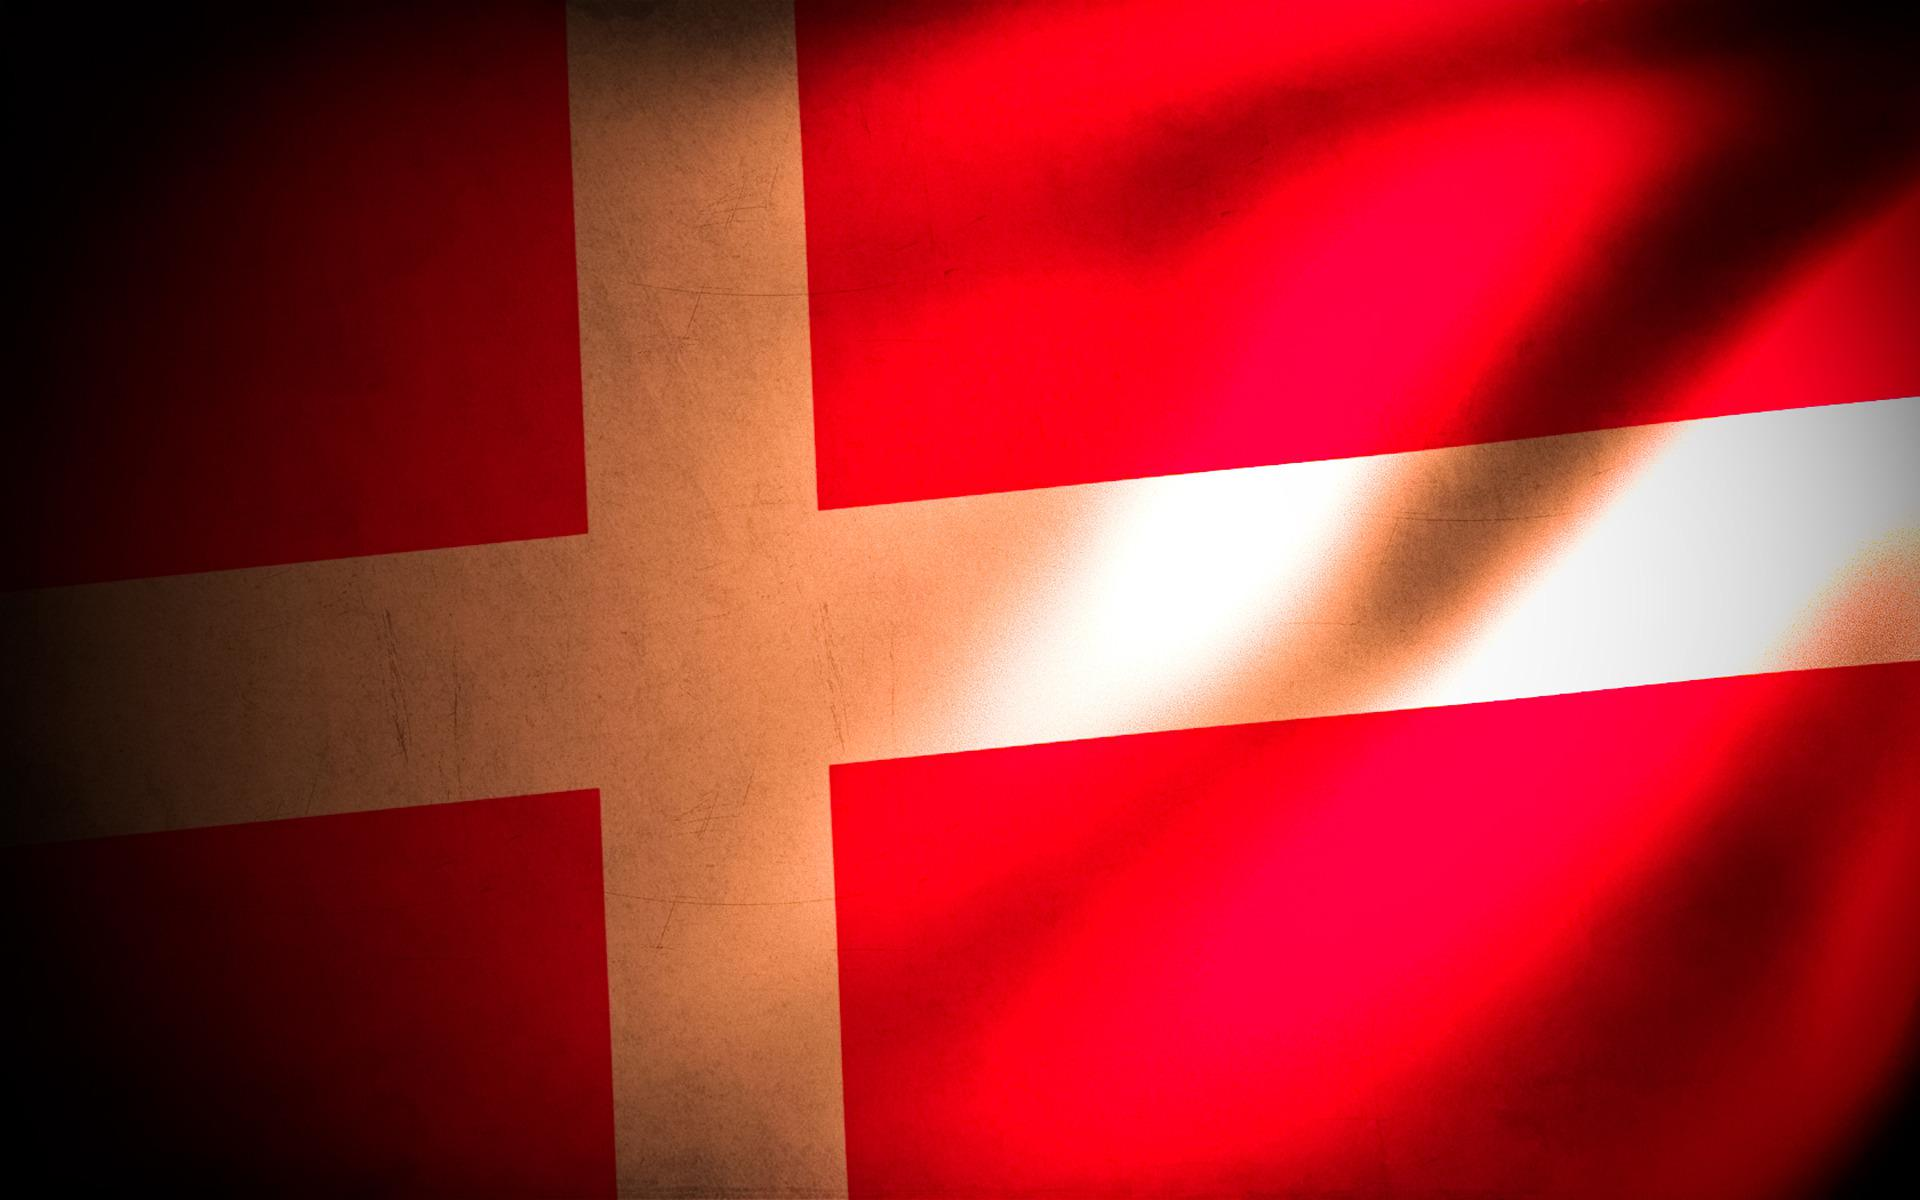 Flag Desktop Background: 3 HD Denmark Flag Wallpapers